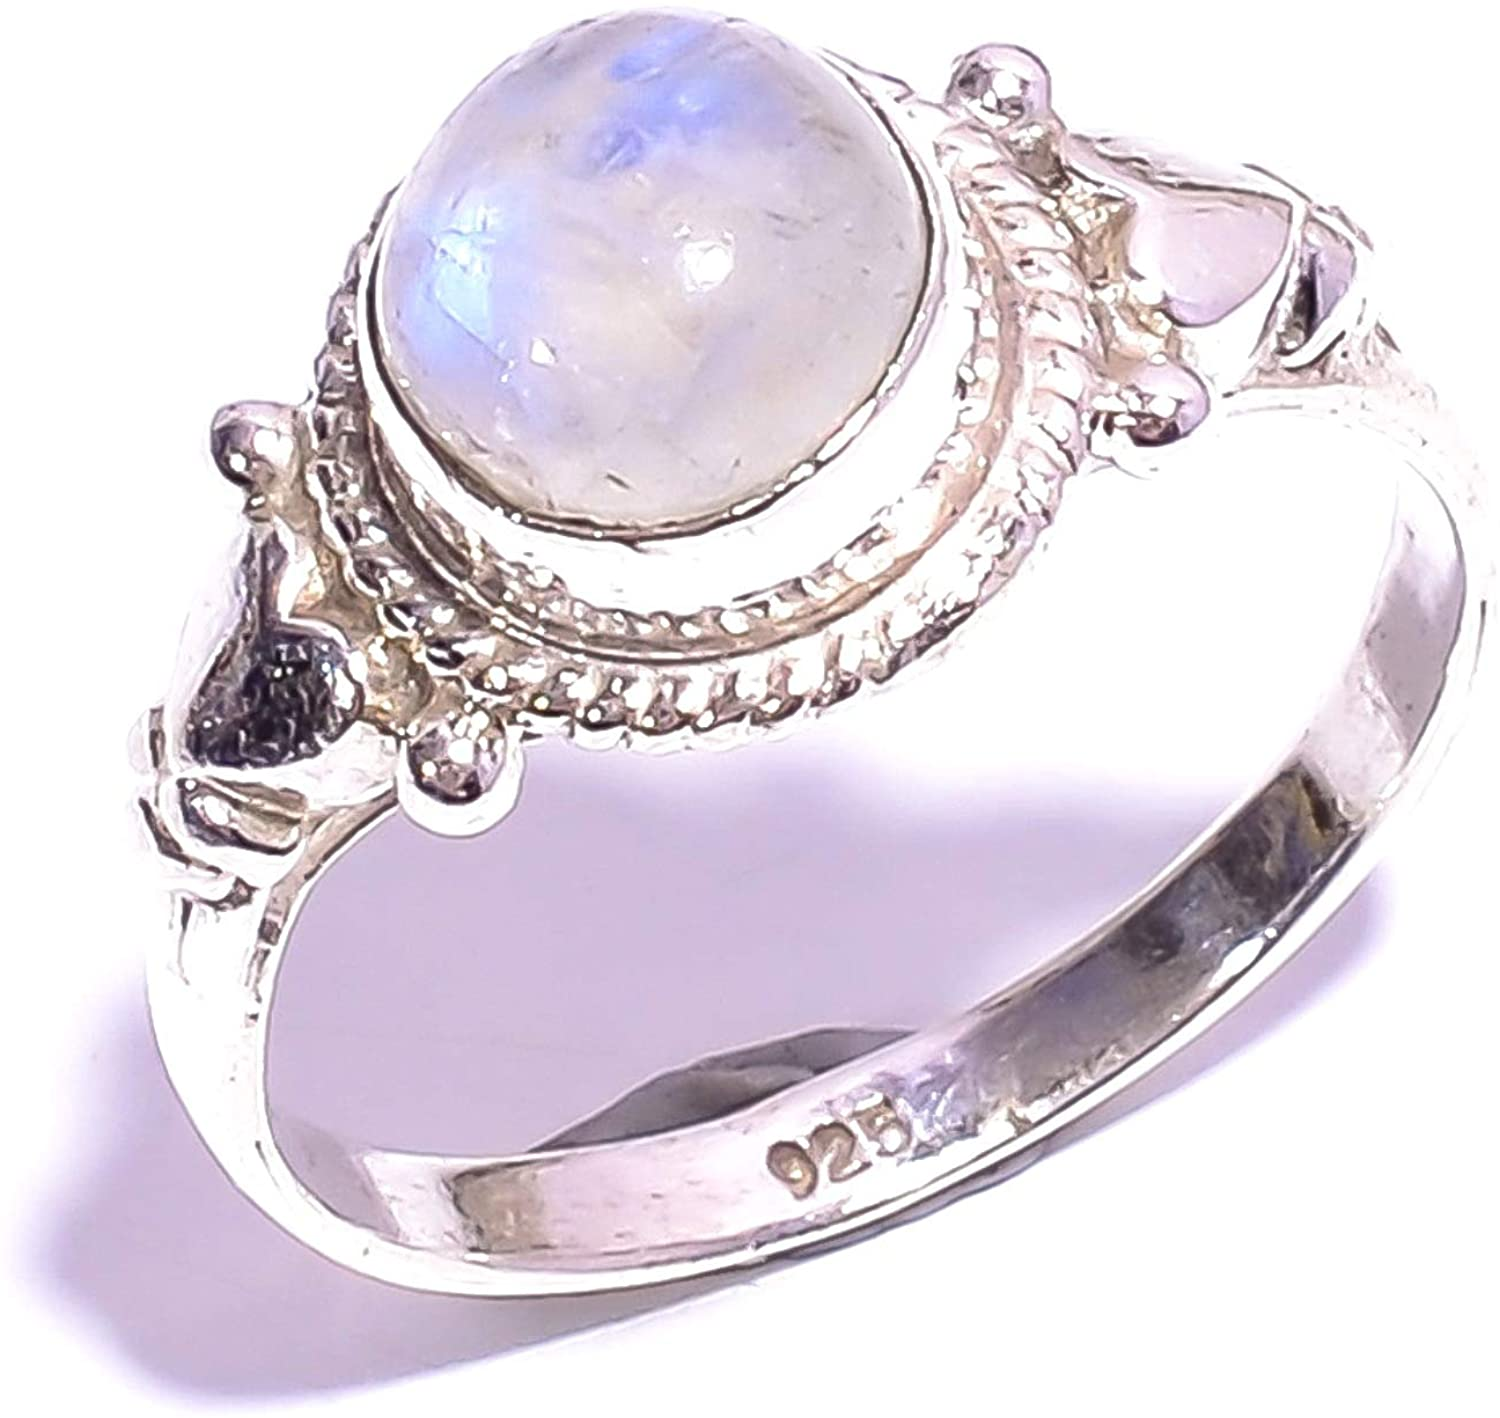 Mughal gems & jewellery 925 Sterling Silver Ring Natural Rainbow Moonstone Gemstone Fine Jewelry Ring for Women & Girls Size 6.25 U.S (ZR-914